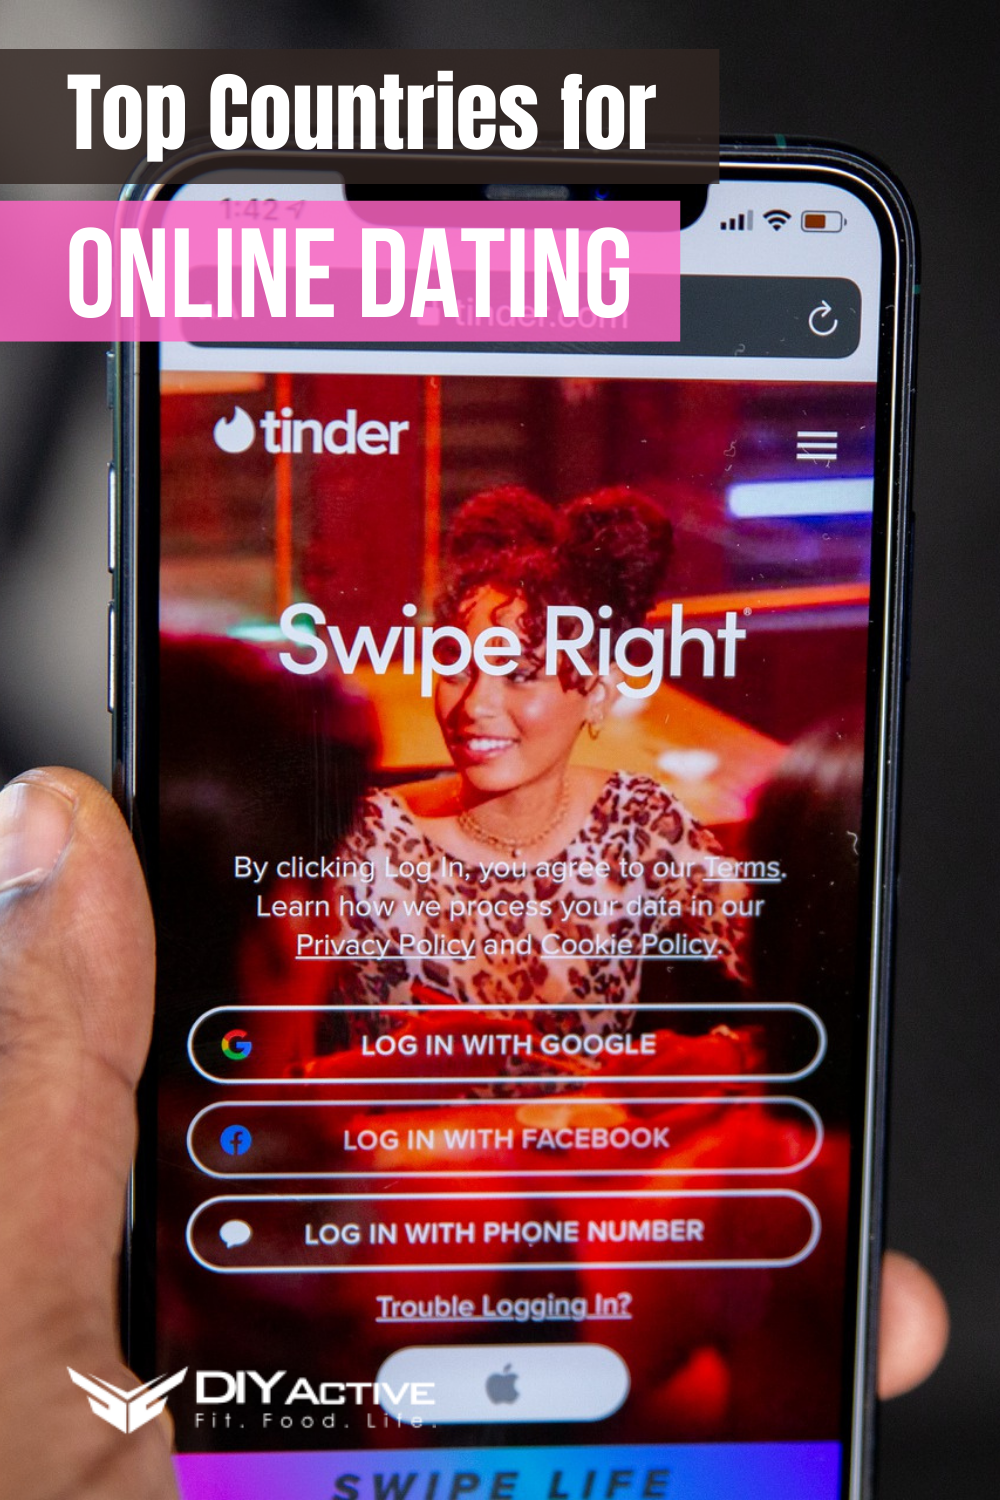 Looking for Love? Top Countries for Online Dating